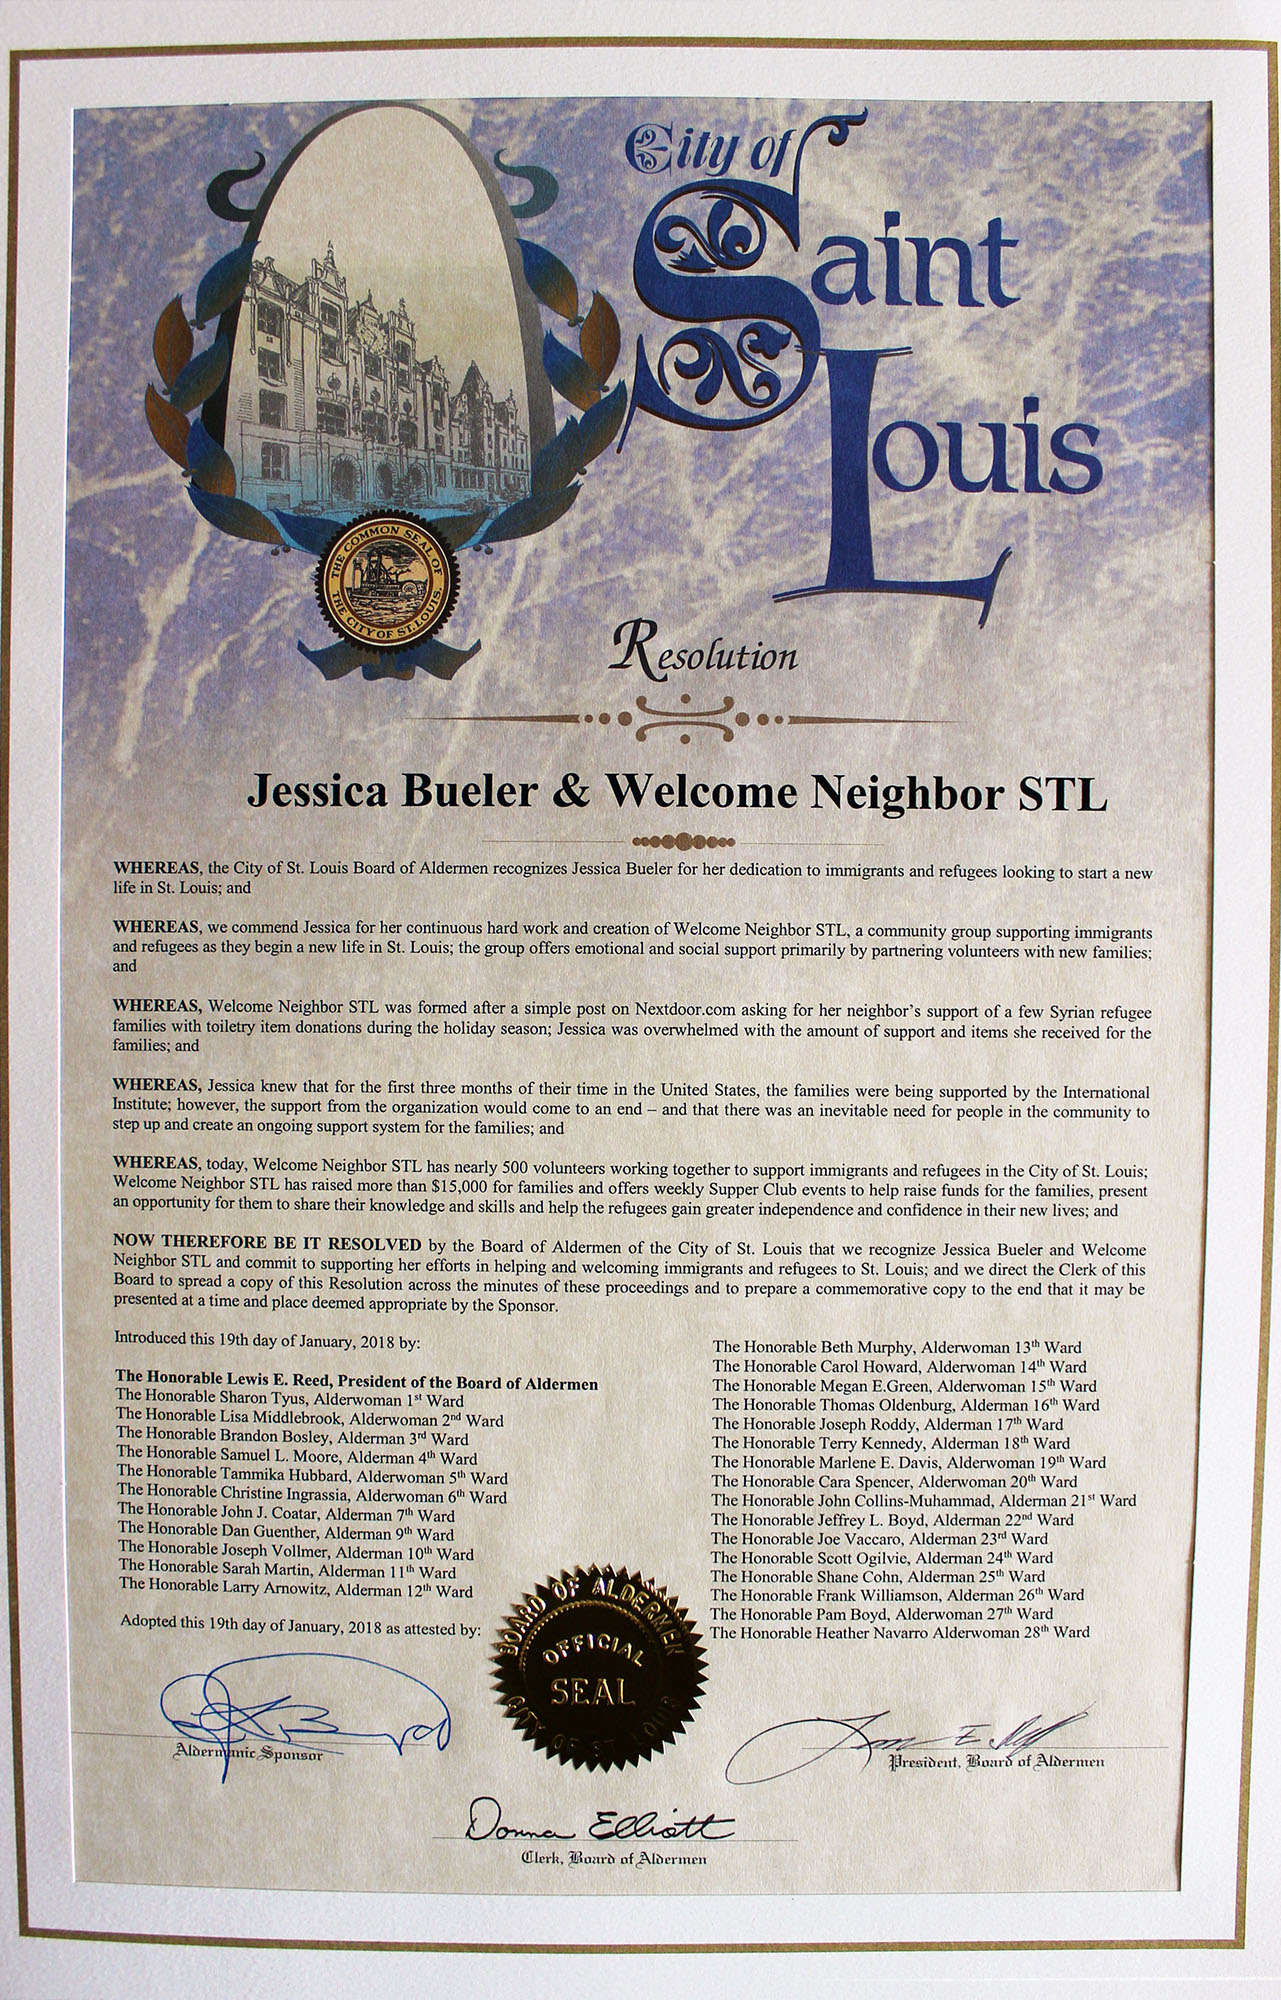 City of St. Louis Resolution for Jessica Bueler & Welcome Neightbor STL